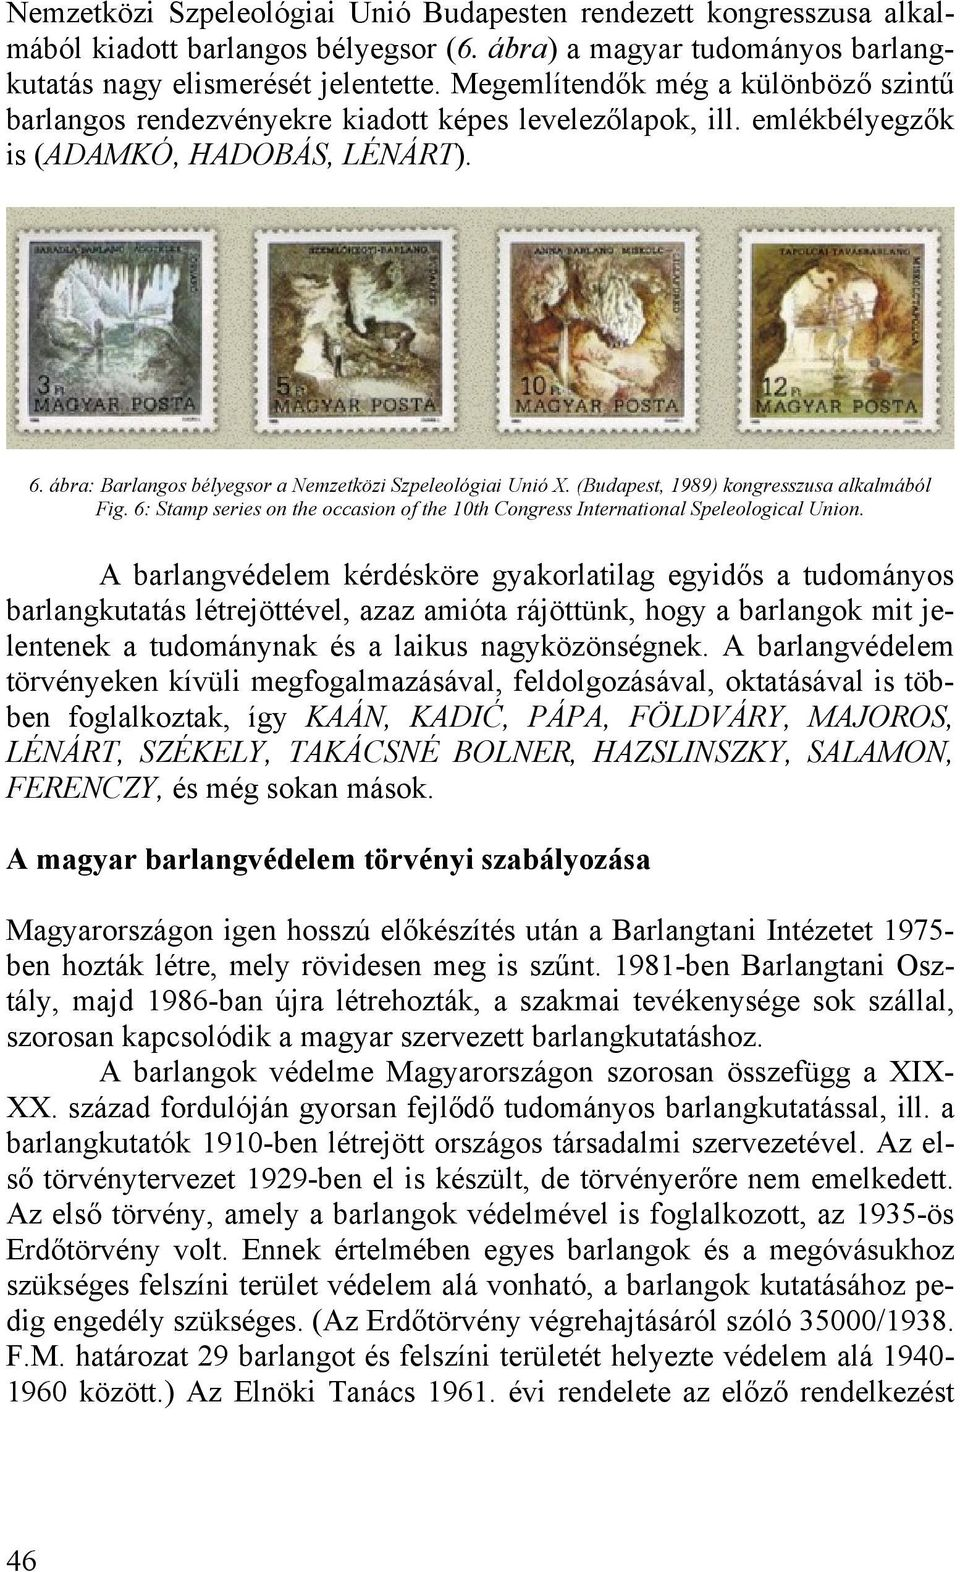 ábra: Barlangos bélyegsor a Nemzetközi Szpeleológiai Unió X. (Budapest, 1989) kongresszusa alkalmából Fig. 6: Stamp series on the occasion of the 10th Congress International Speleological Union.